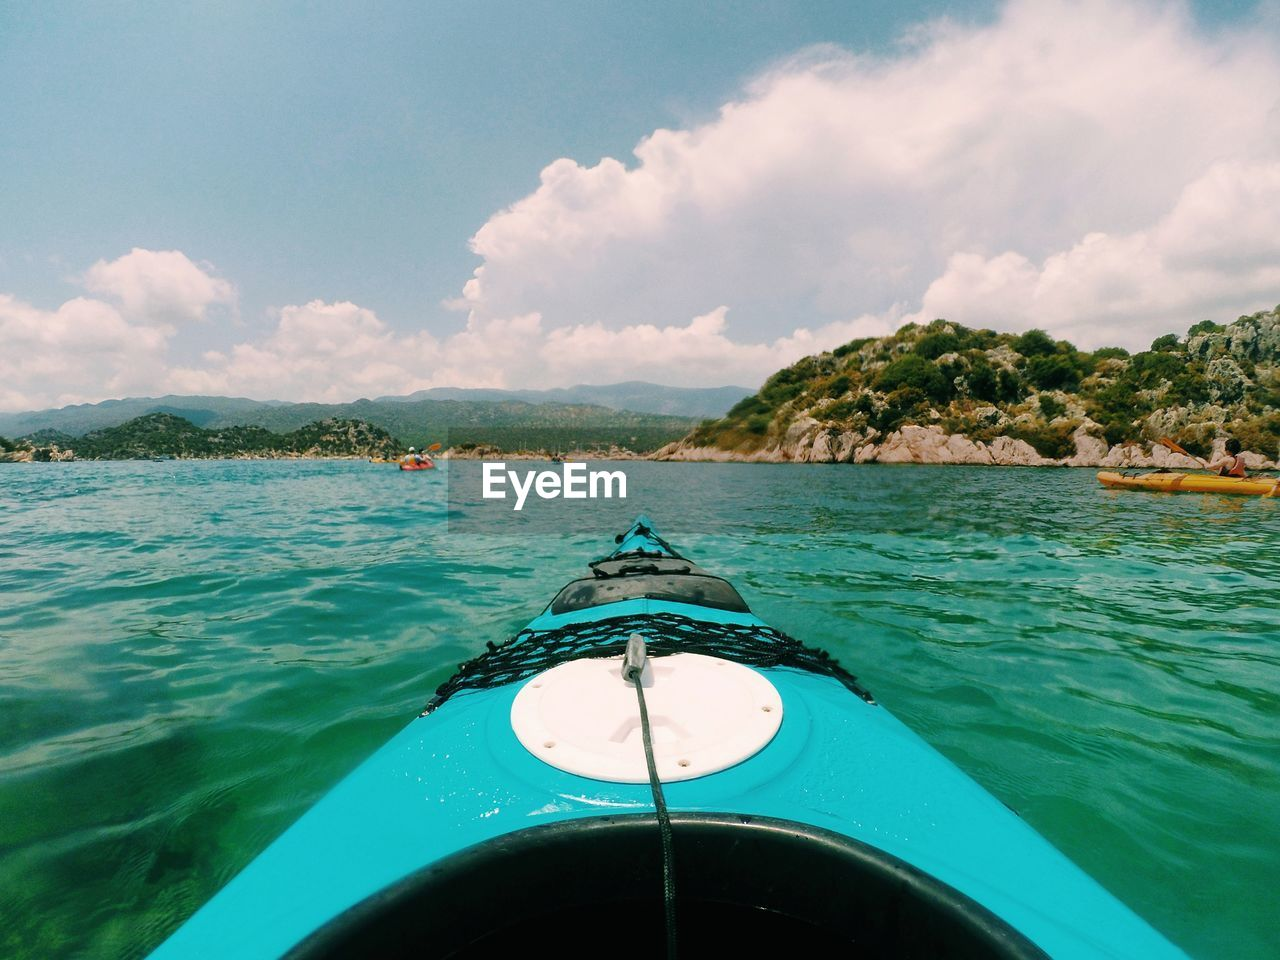 transportation, mode of transportation, nautical vessel, water, sky, cloud - sky, nature, sea, day, beauty in nature, no people, scenics - nature, travel, outdoors, land, turquoise colored, blue, motorboat, non-urban scene